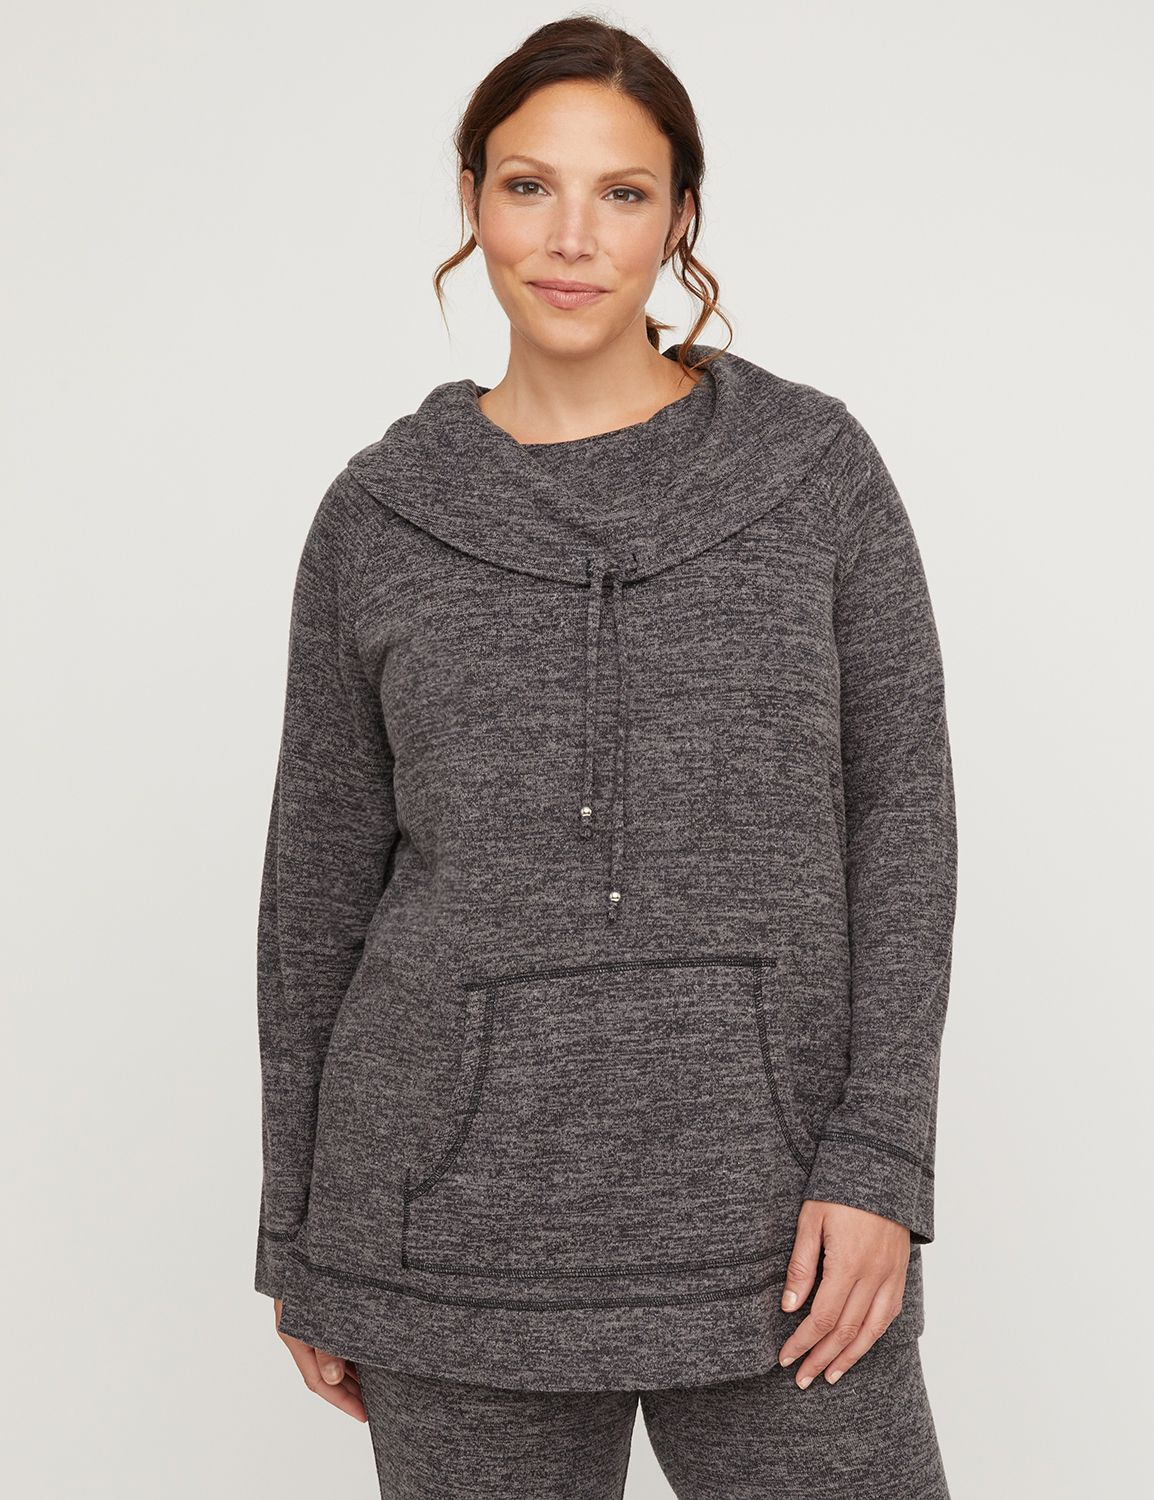 "The velvety touch makes this sweatshirt your new favorite layer! The super-soft, lightweight fabric is designed for comfort on-the-go. Featuring a drawstring detail along the cowl neck for added style. Long sleeves. Front kangaroo pocket. Item Number #315746, 84% Polyester/13% Rayon/3% Spandex, Machine Wash, Imported Plus Size Activewear, Length: 31"" , Plus Sizes 0X-5X, Petite Plus Sizes 0XWP-3XWP, Catherines Plus Sizes"